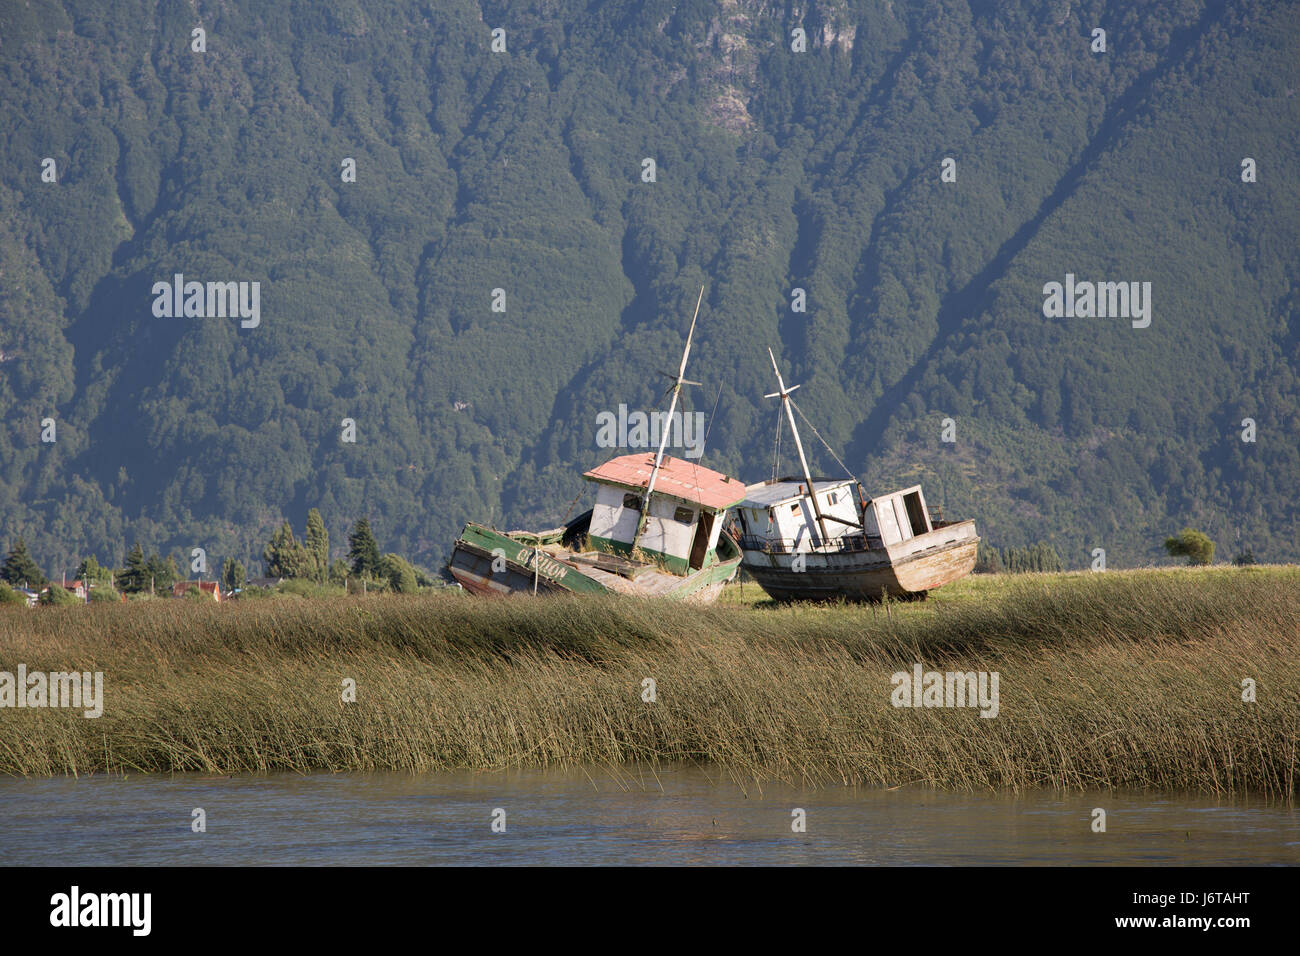 Abandoned boats in Aysen. - Stock Image